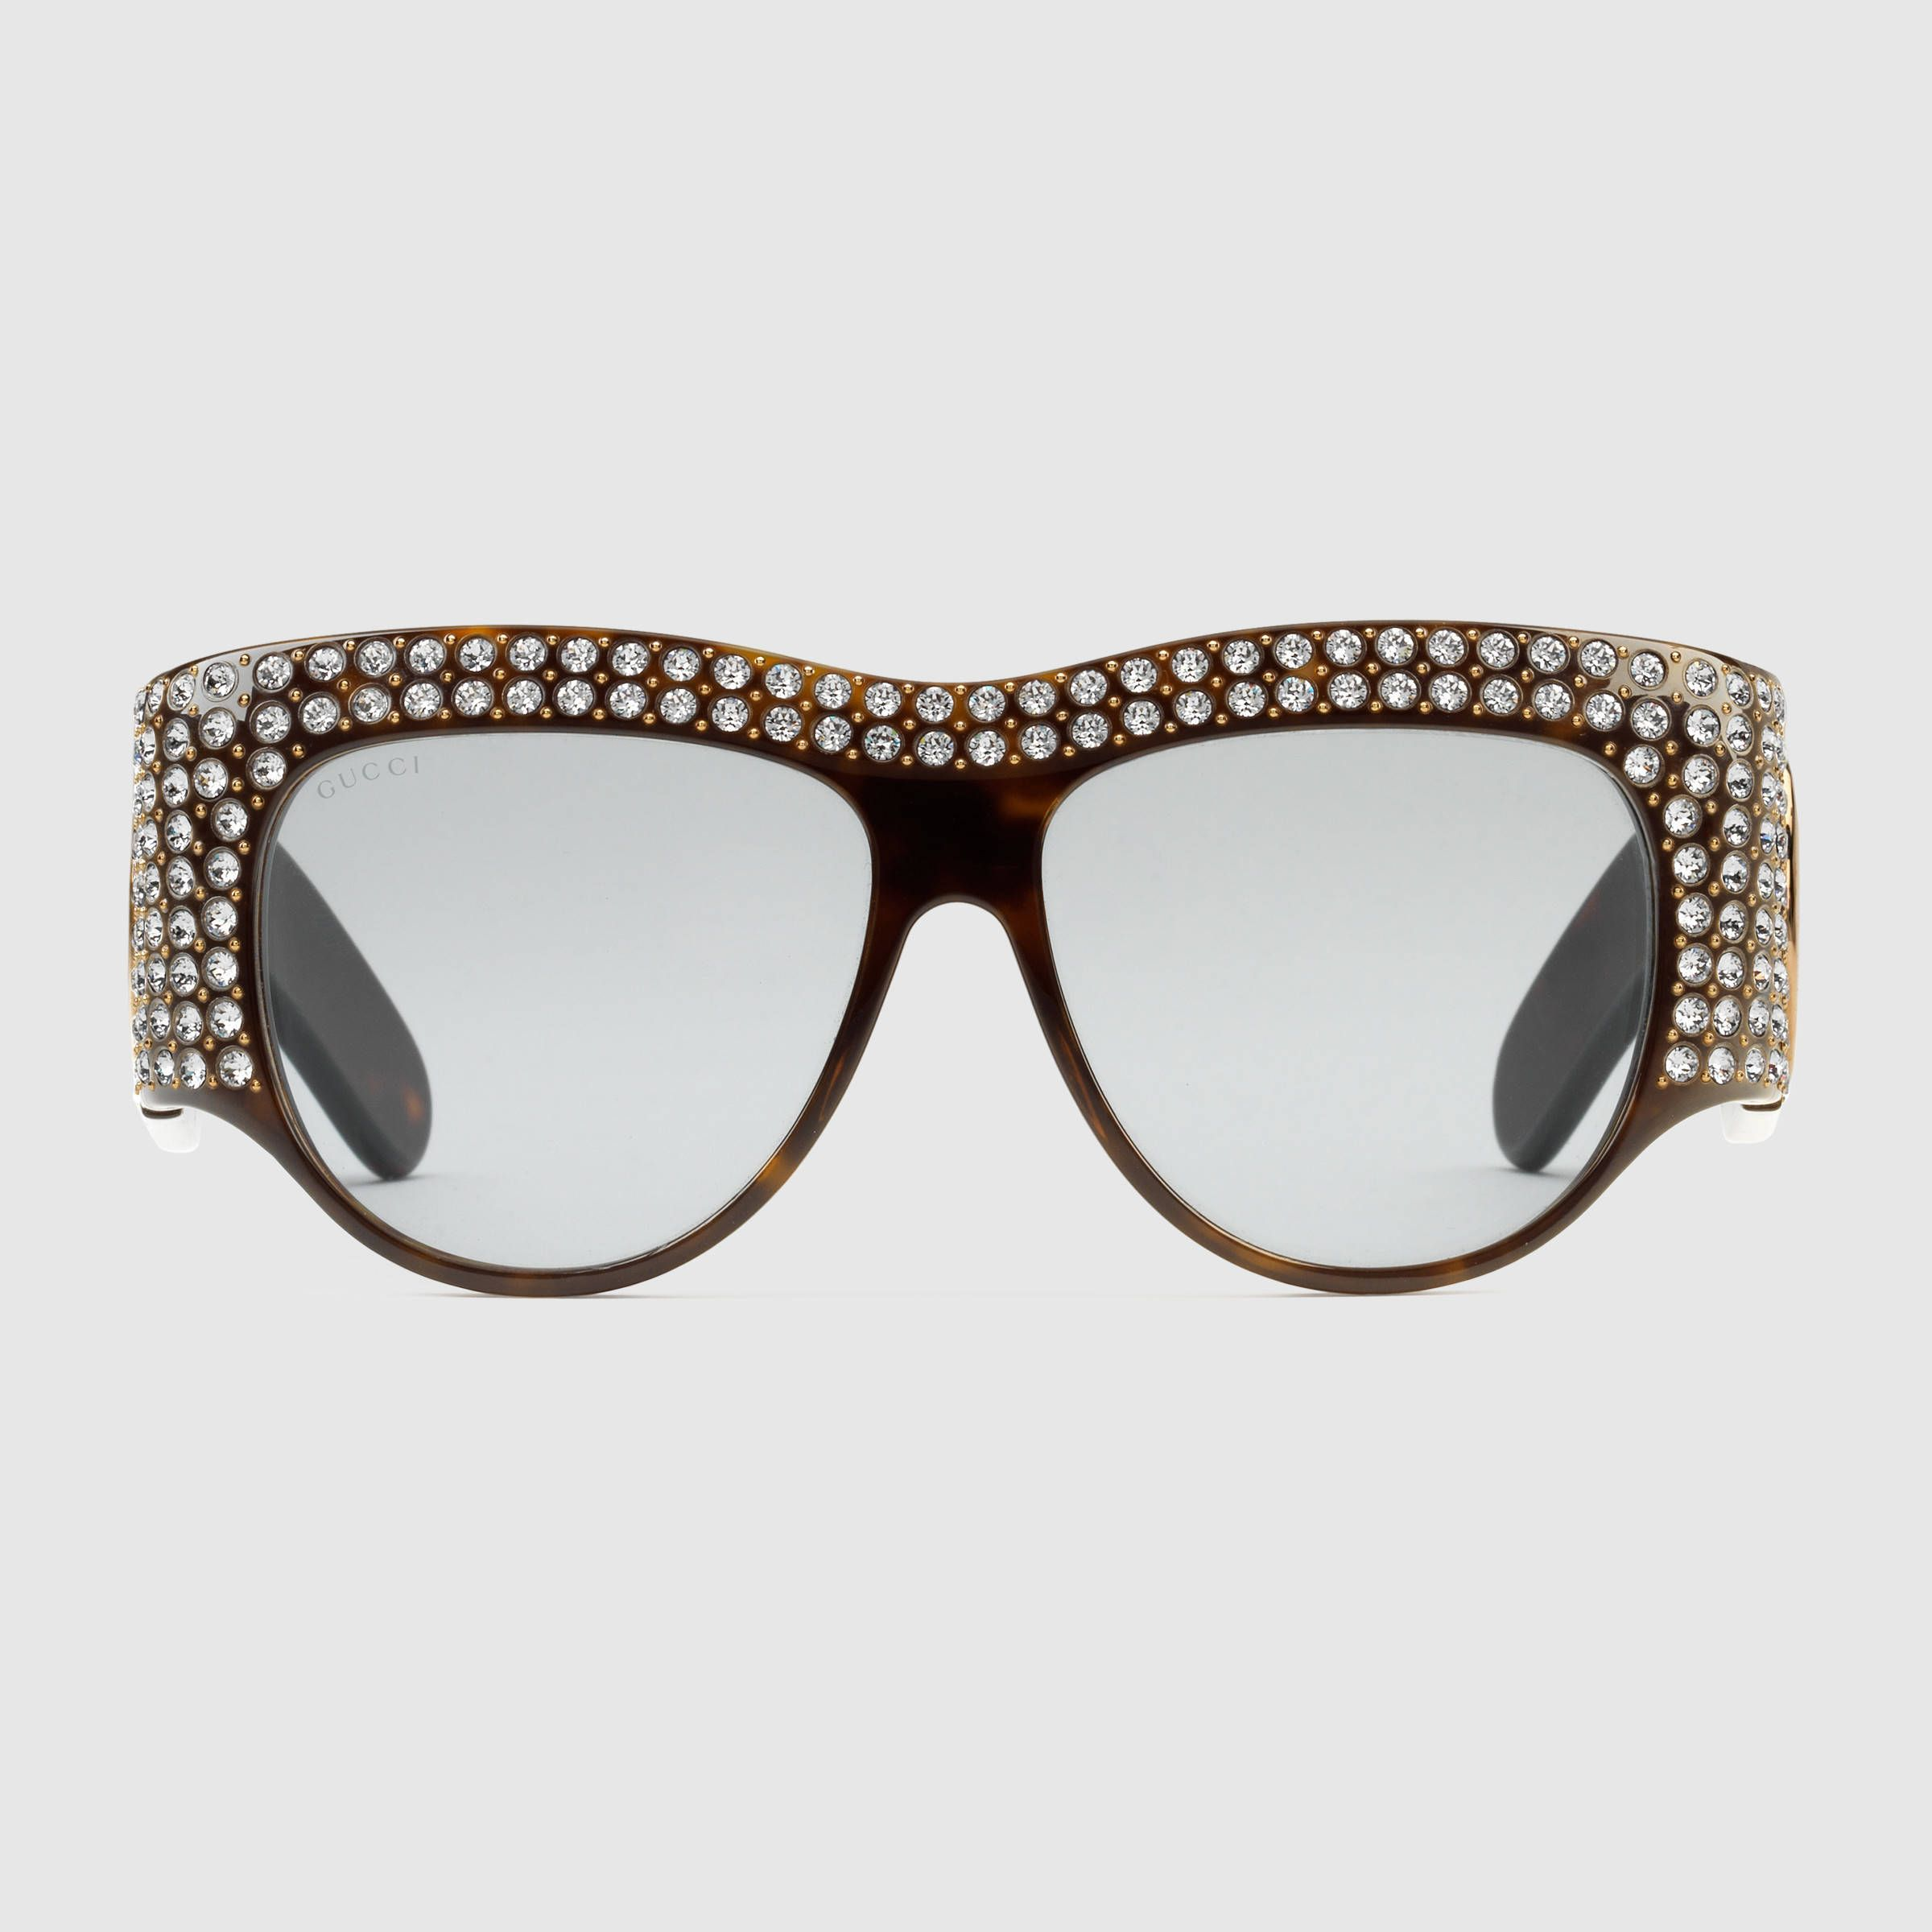 5cd6debb716ce Rectangular-frame acetate sunglasses with pearls - Gucci Women s Eyewear.  Women